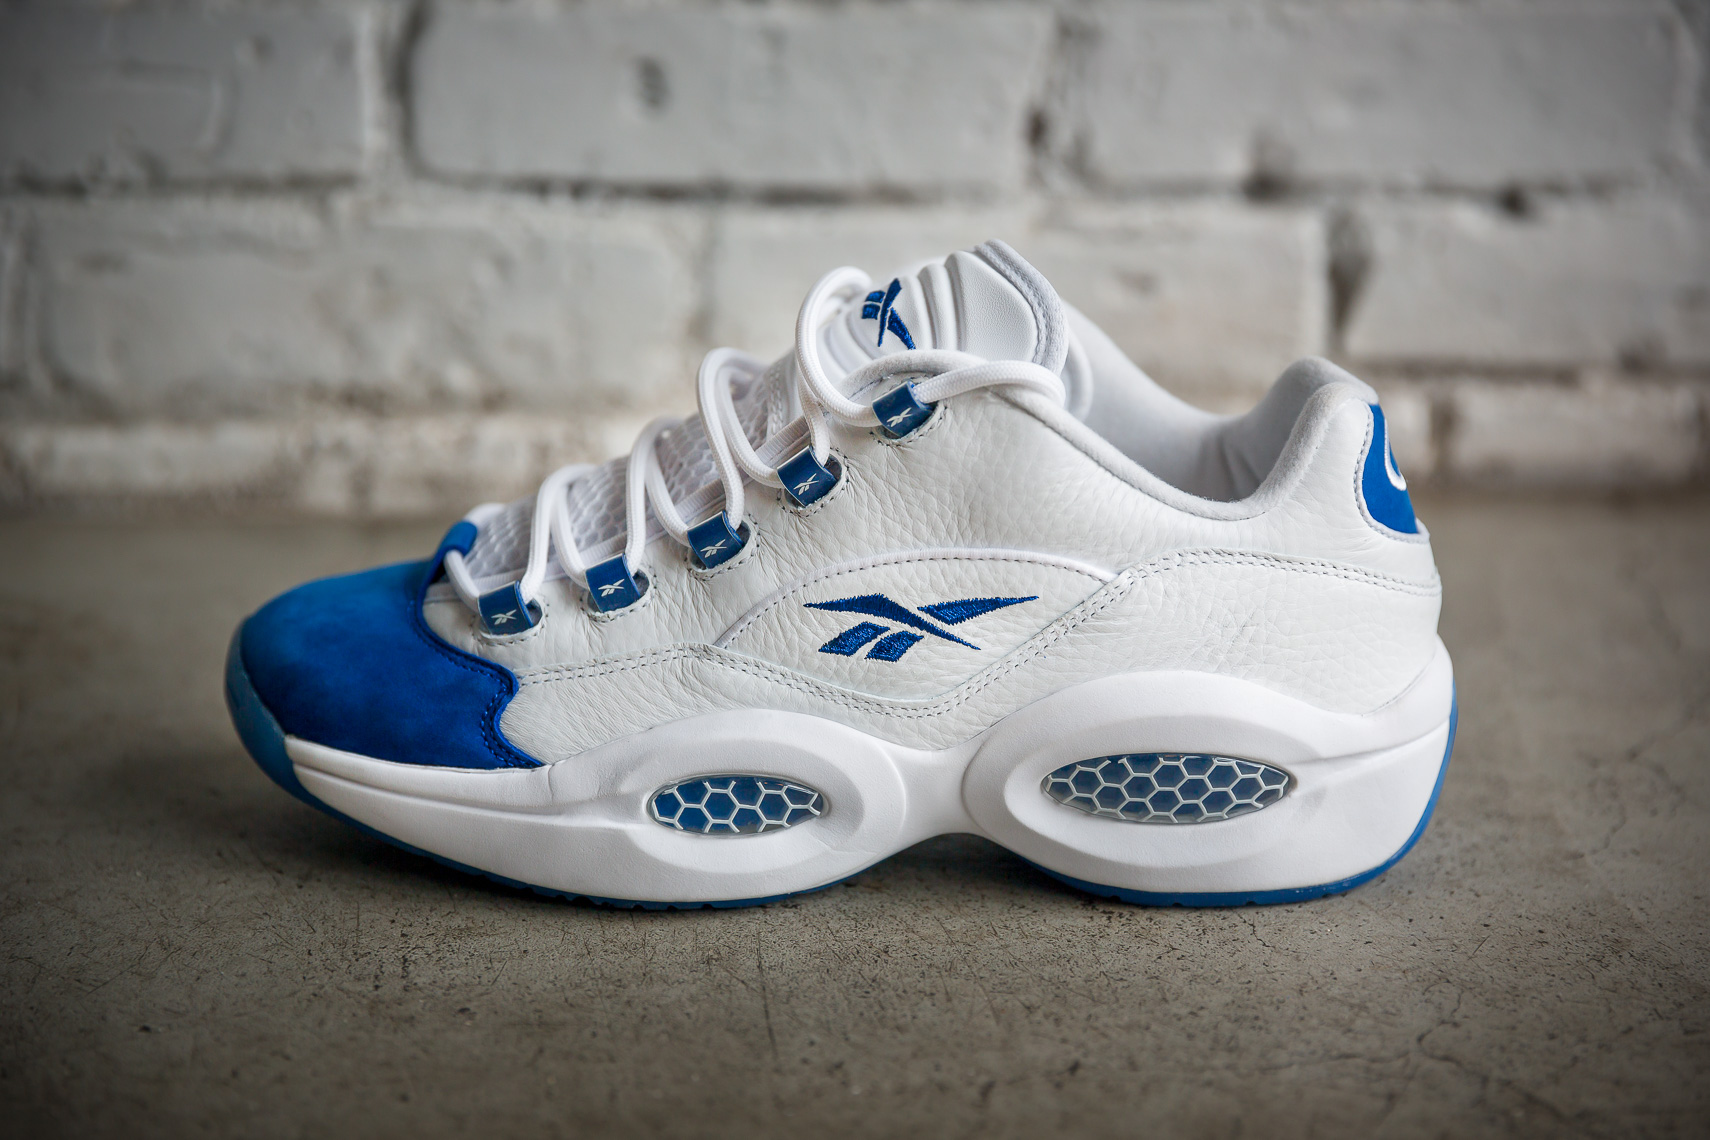 MR_150718_Reebok Blue_0059-Edit.jpg